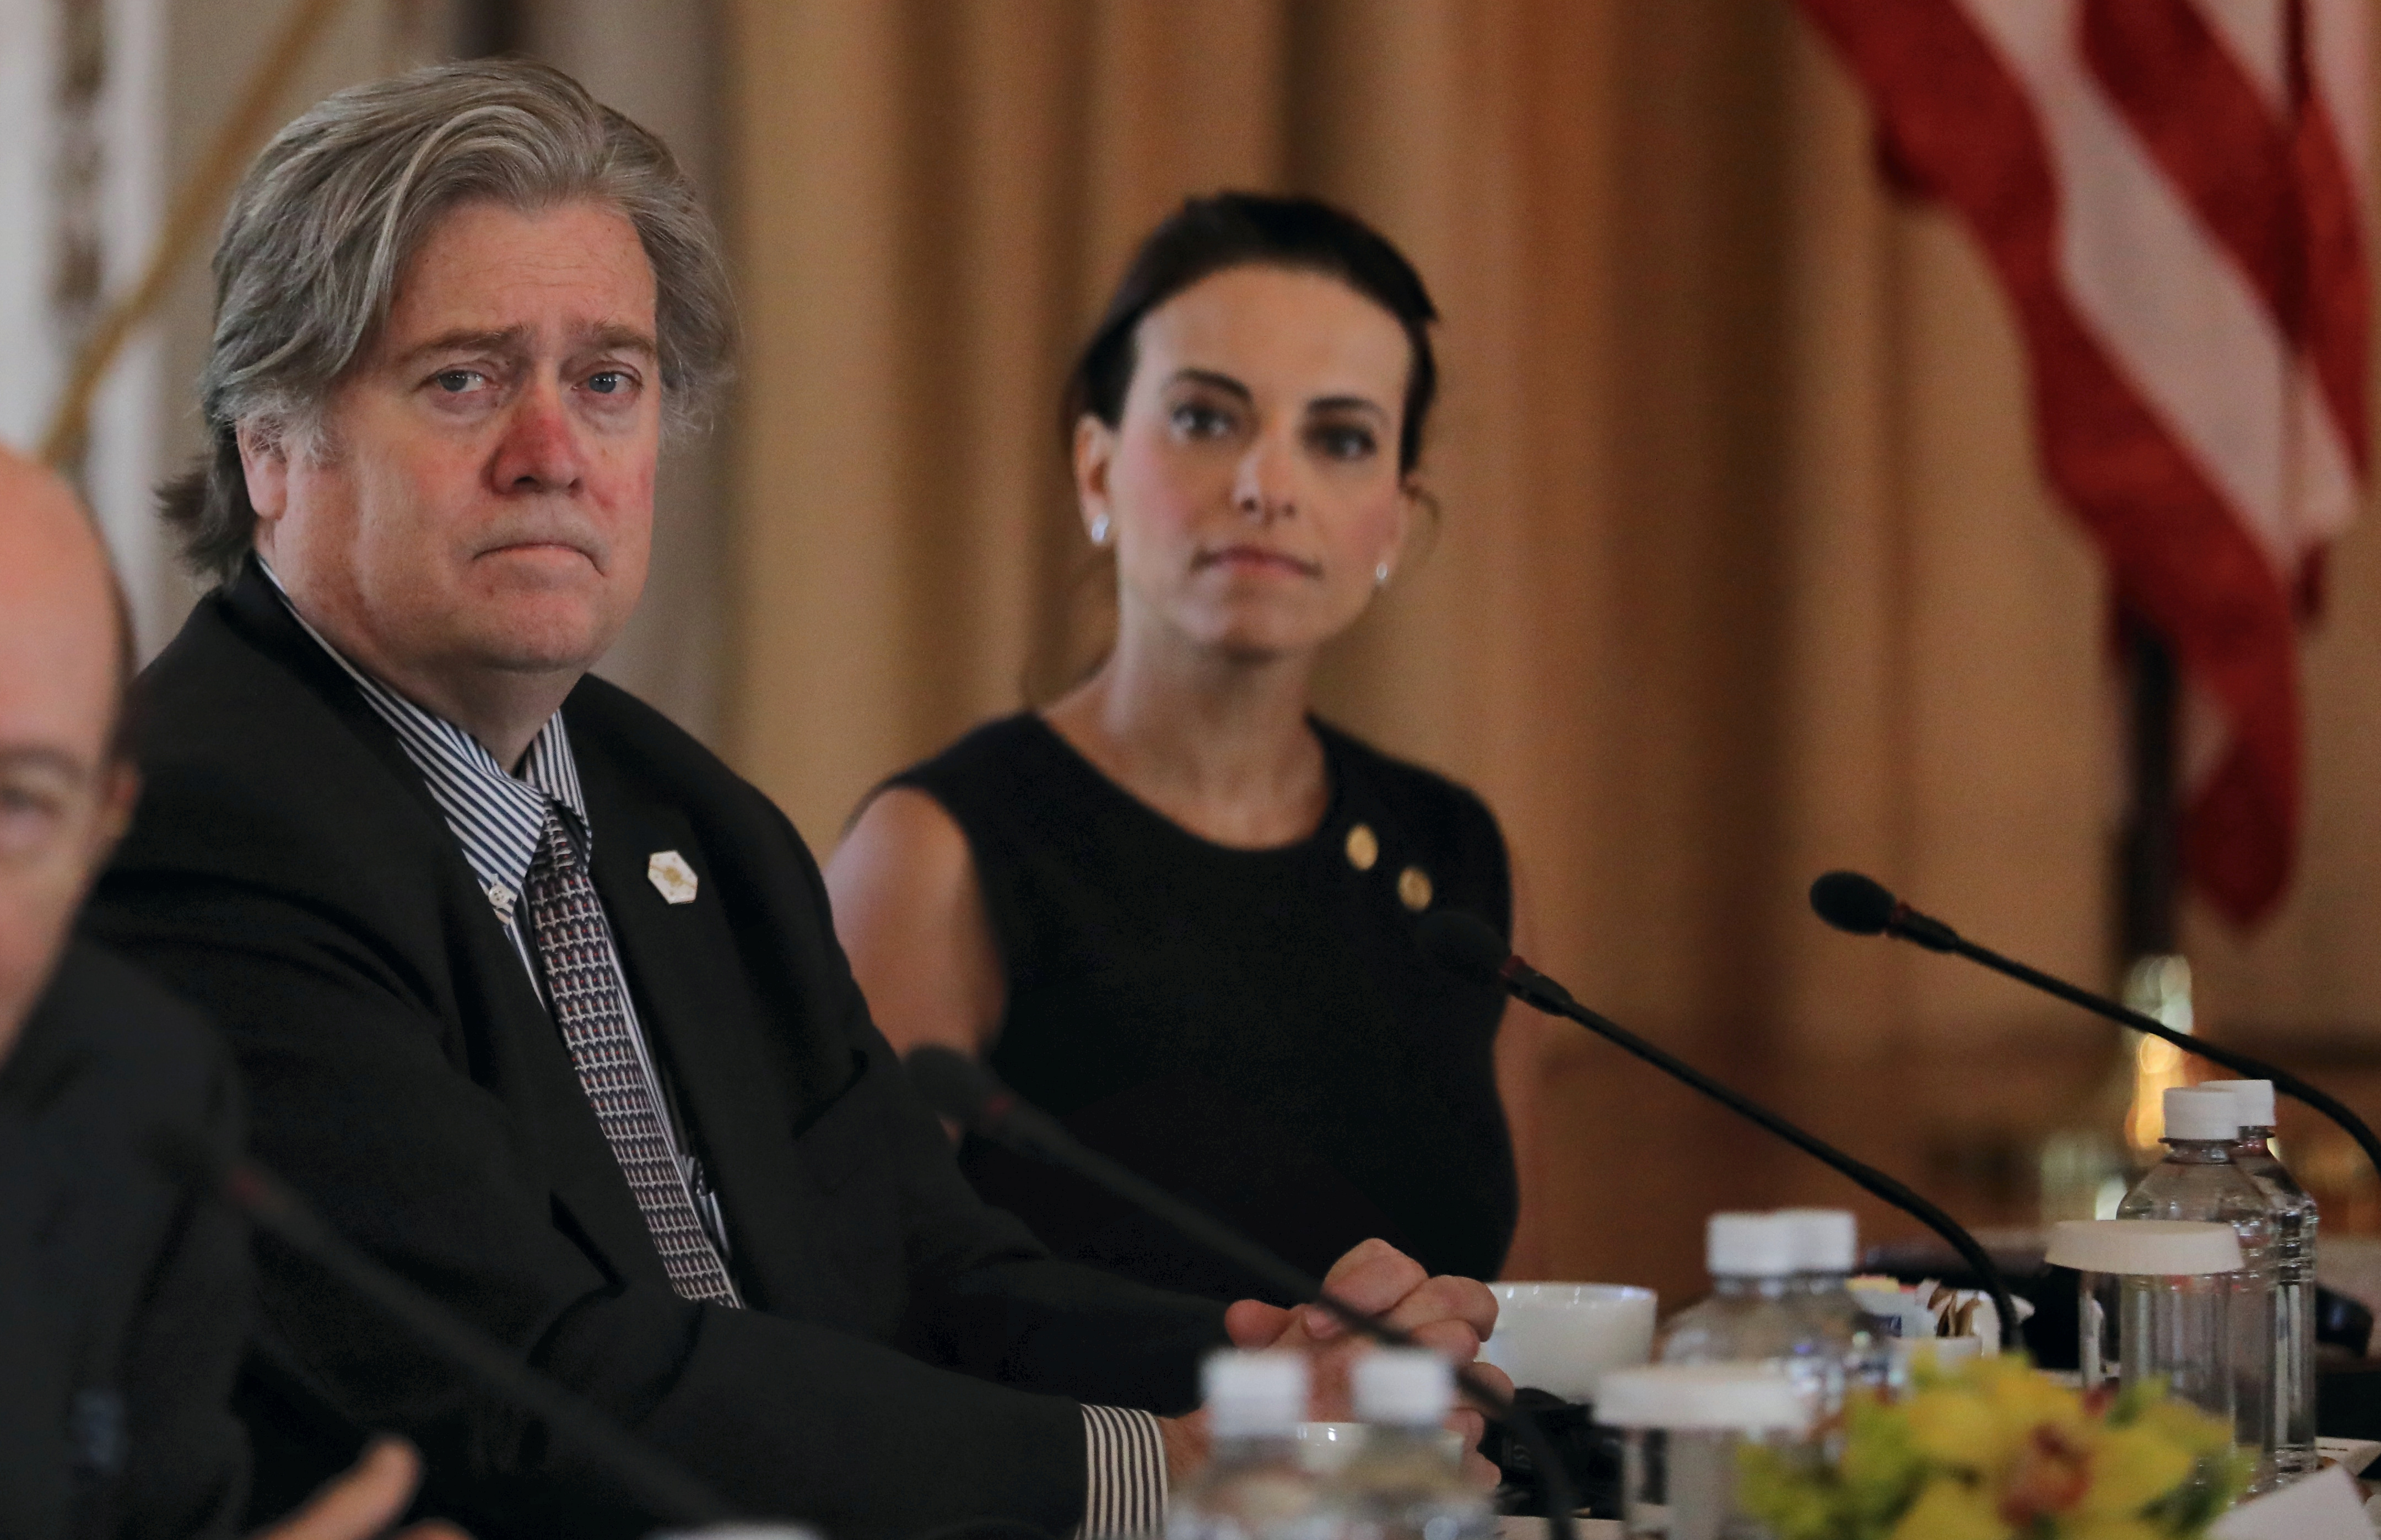 White House Chief Strategist Steve Bannon (L) listens with U.S. Deputy National Security Advisor for Strategy Dina Powell (R) during a bilateral meeting between U.S. President Donald Trump (L) and China's President Xi Jinping (Not Pictured) at Trump's Mar-a-Lago estate in Palm Beach, Florida on April 7, 2017. (REUTERS/Carlos Barria)